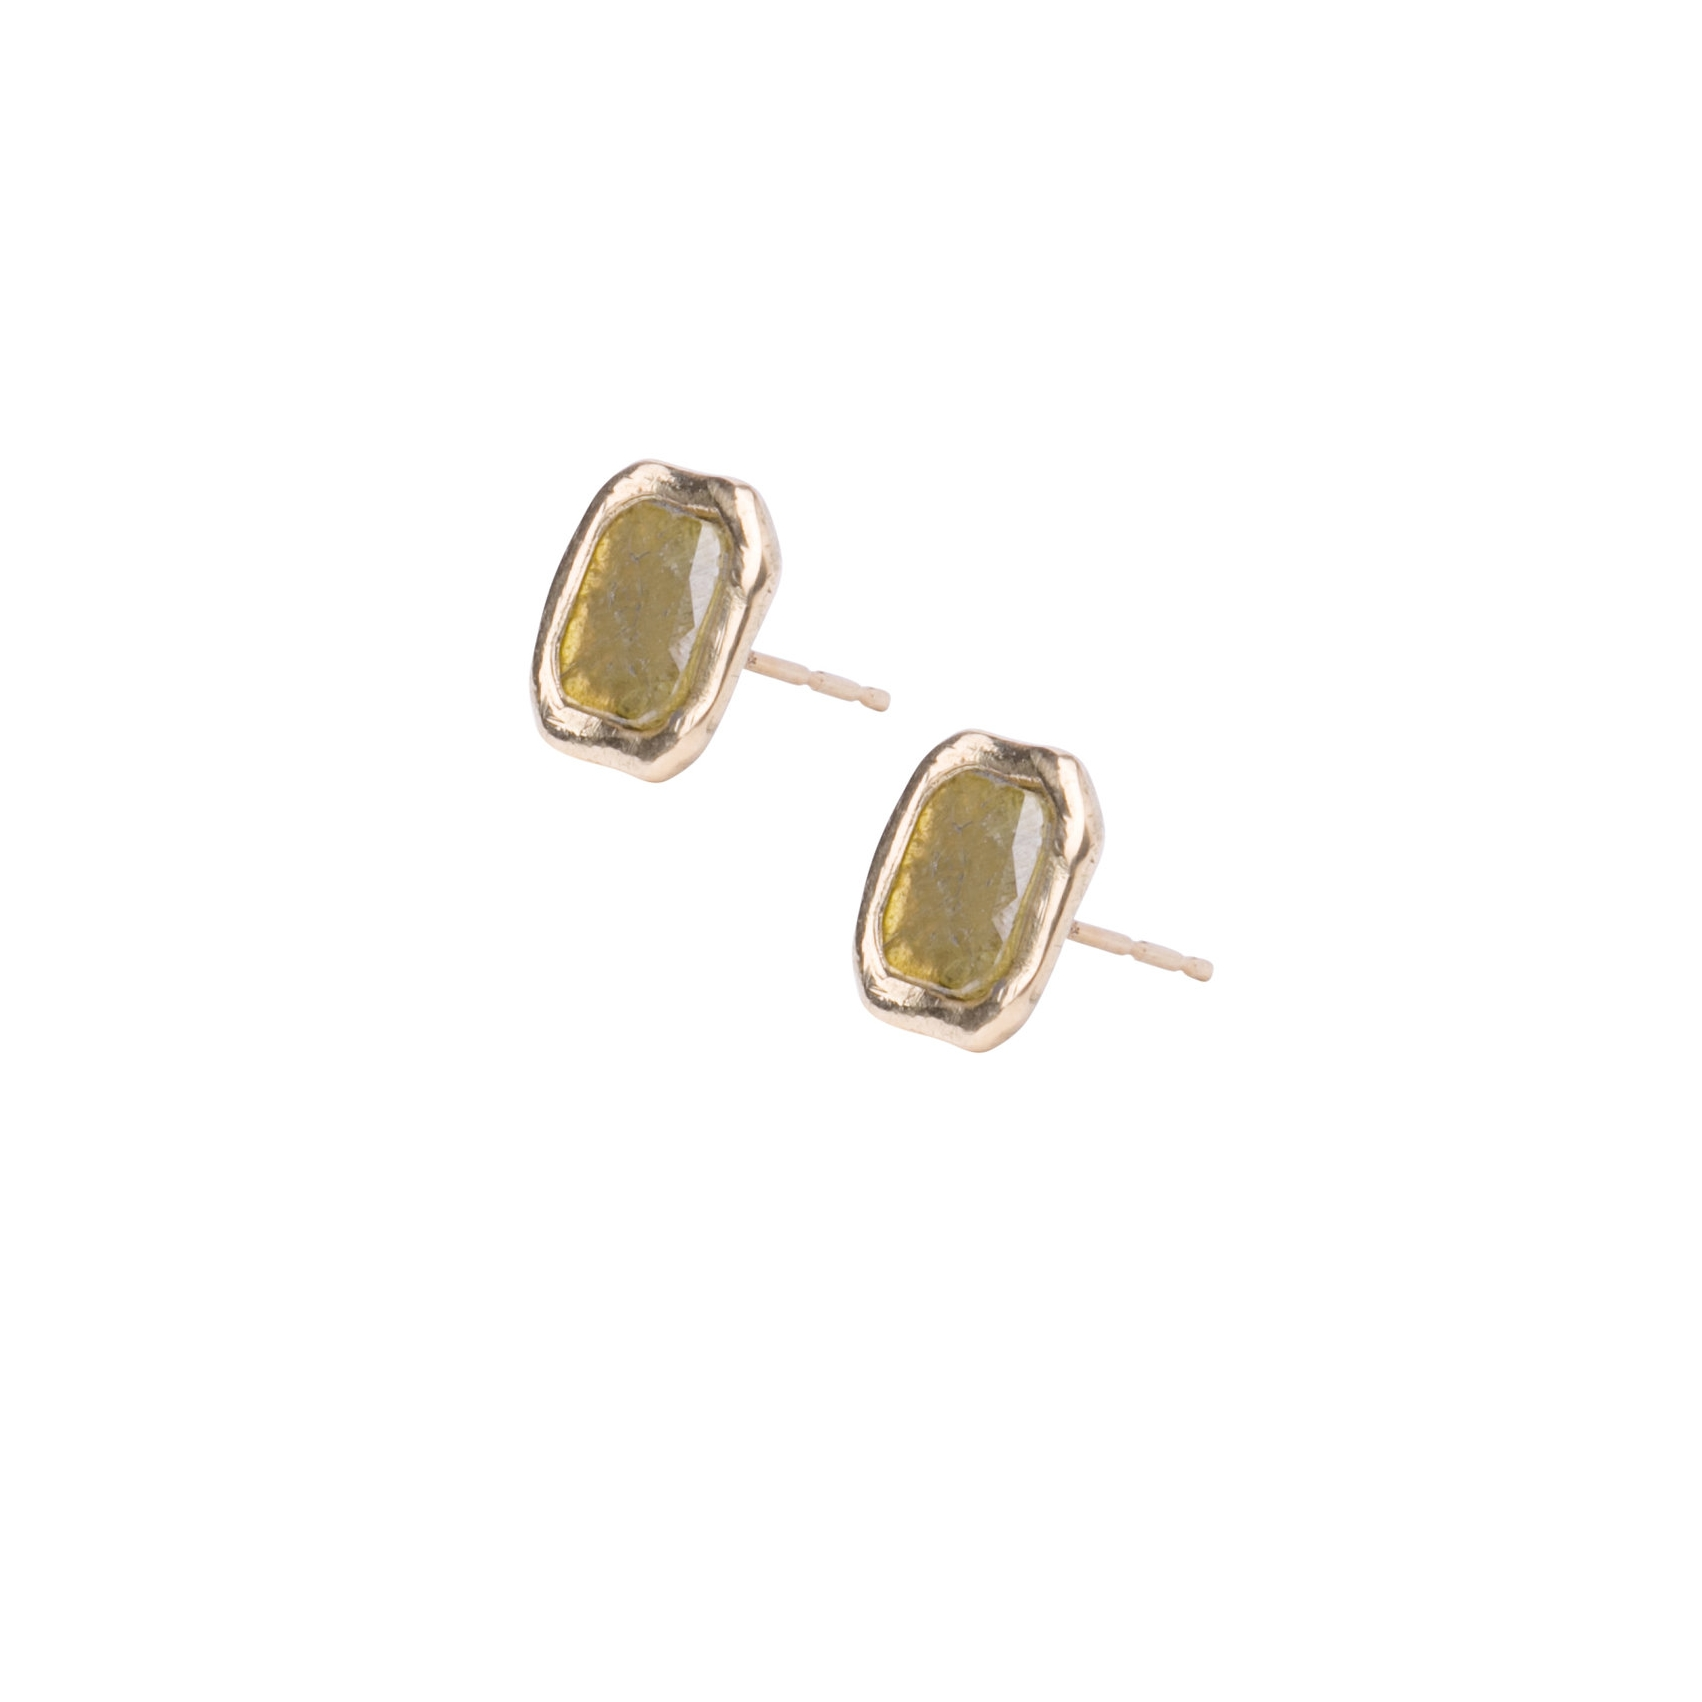 Earrings_stud-003.JPG